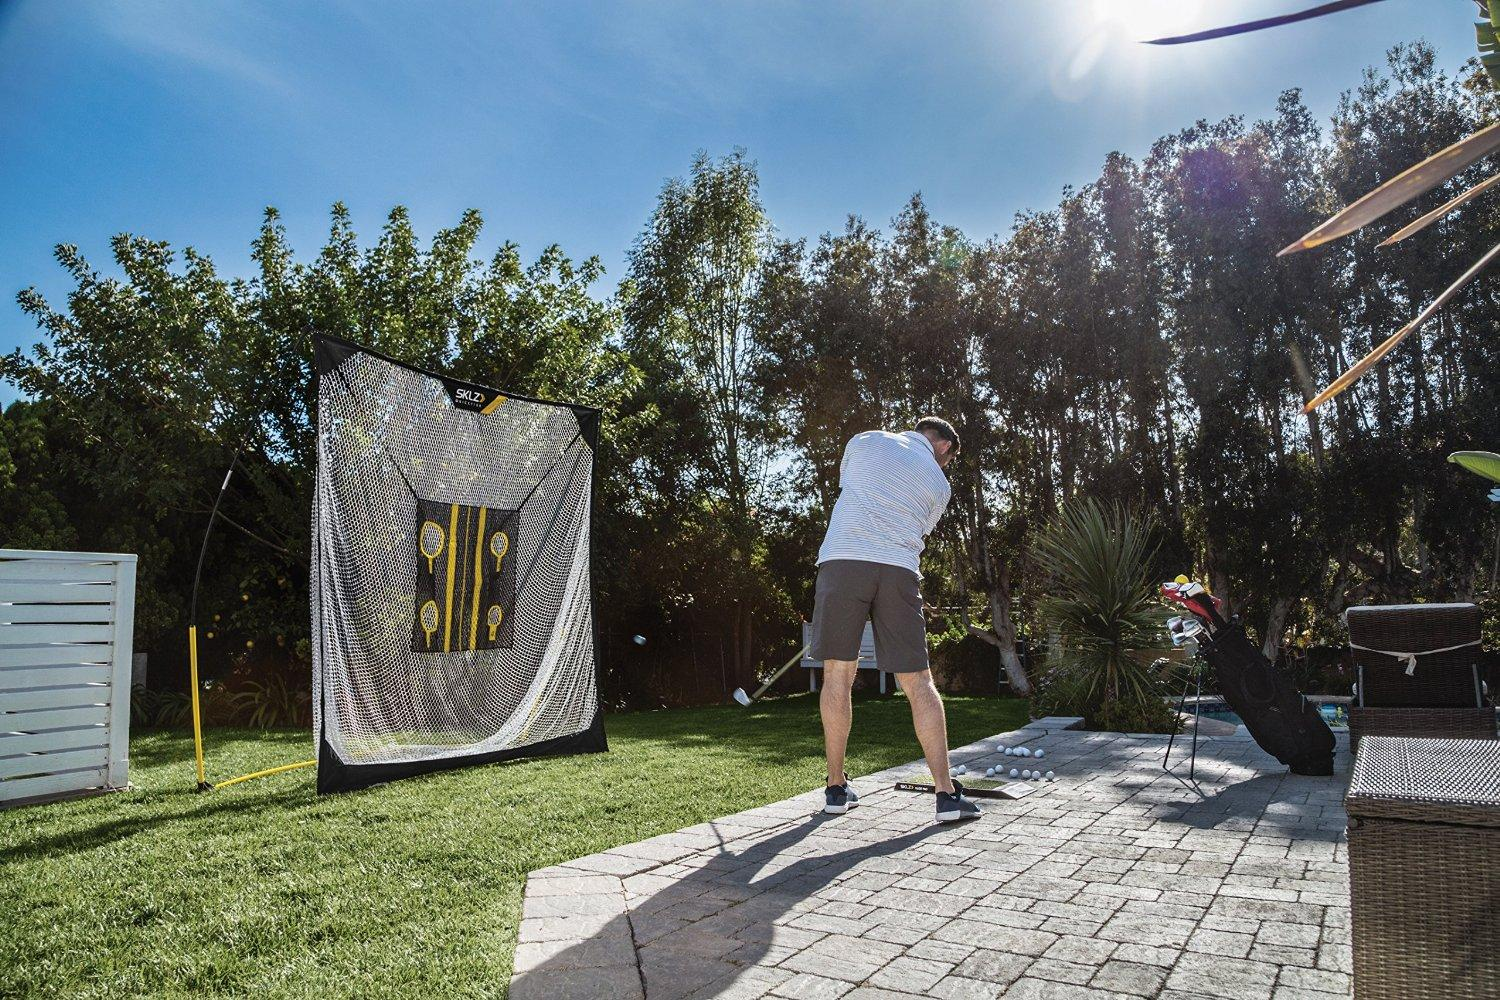 Amazon.com : SKLZ Quickster Golf Net 6 X 6ft with Chipping ...